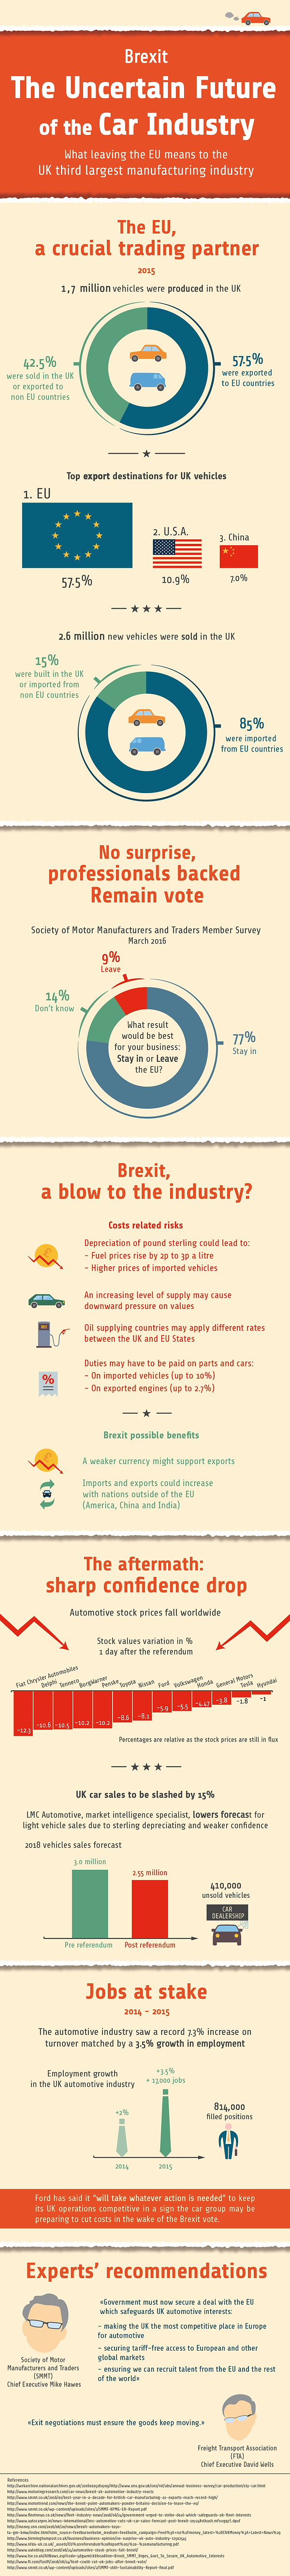 infographic data visualisation automotive industry brexit consequence